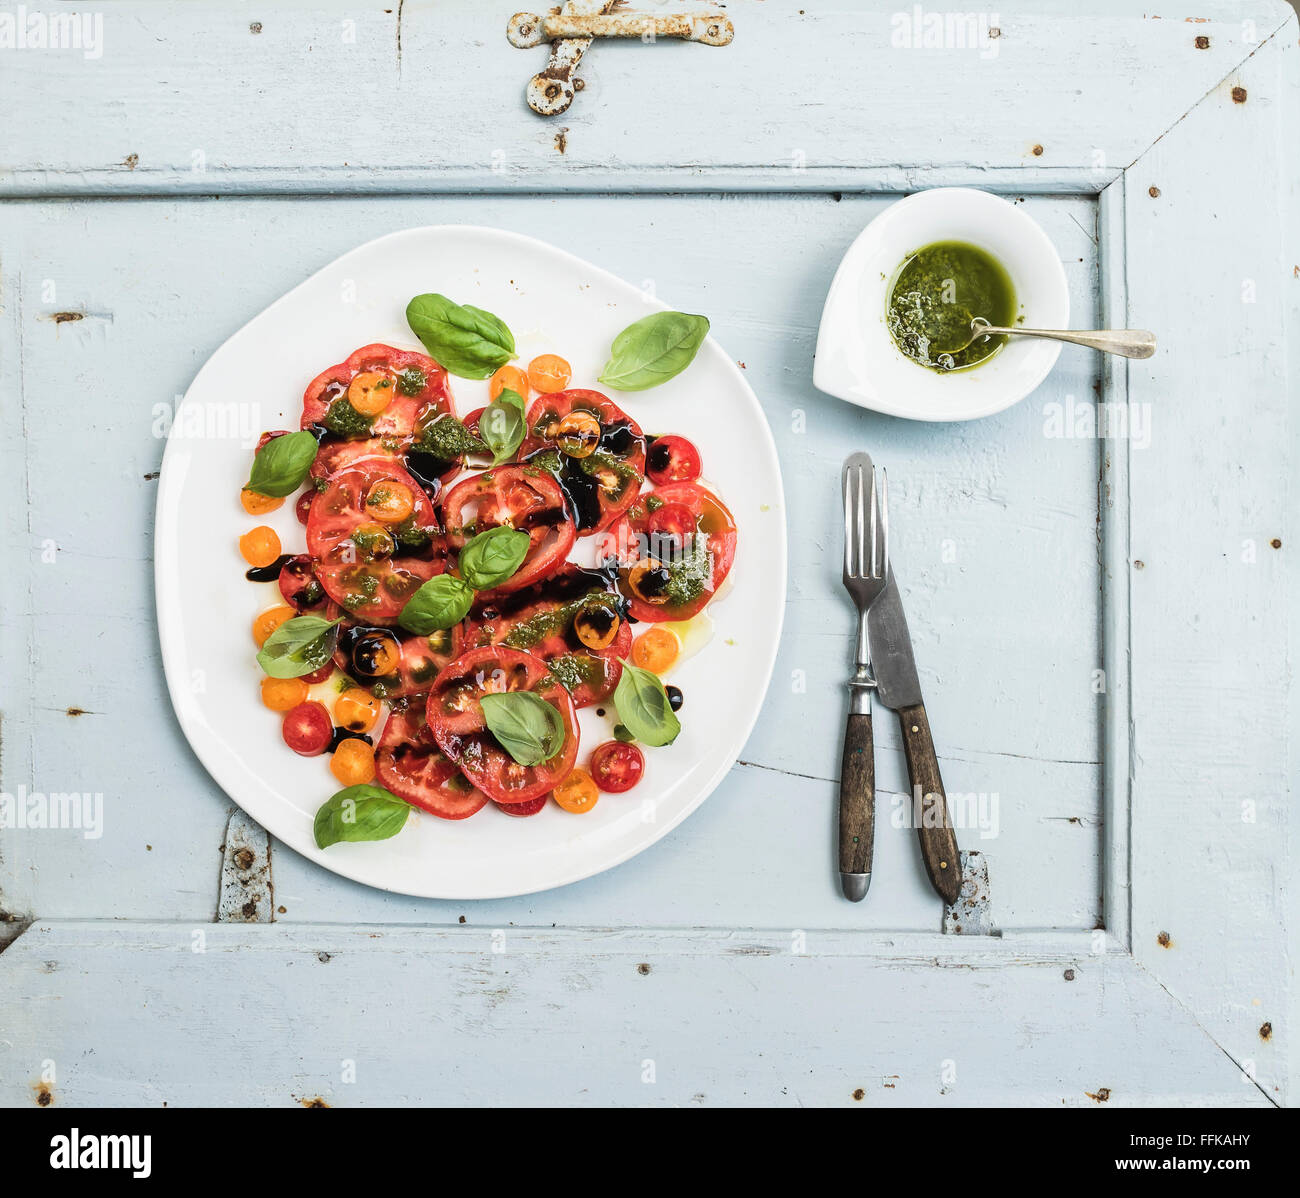 Ripe village heirloom tomato salad with olive oil and basil over light blue wooden background, top view - Stock Image